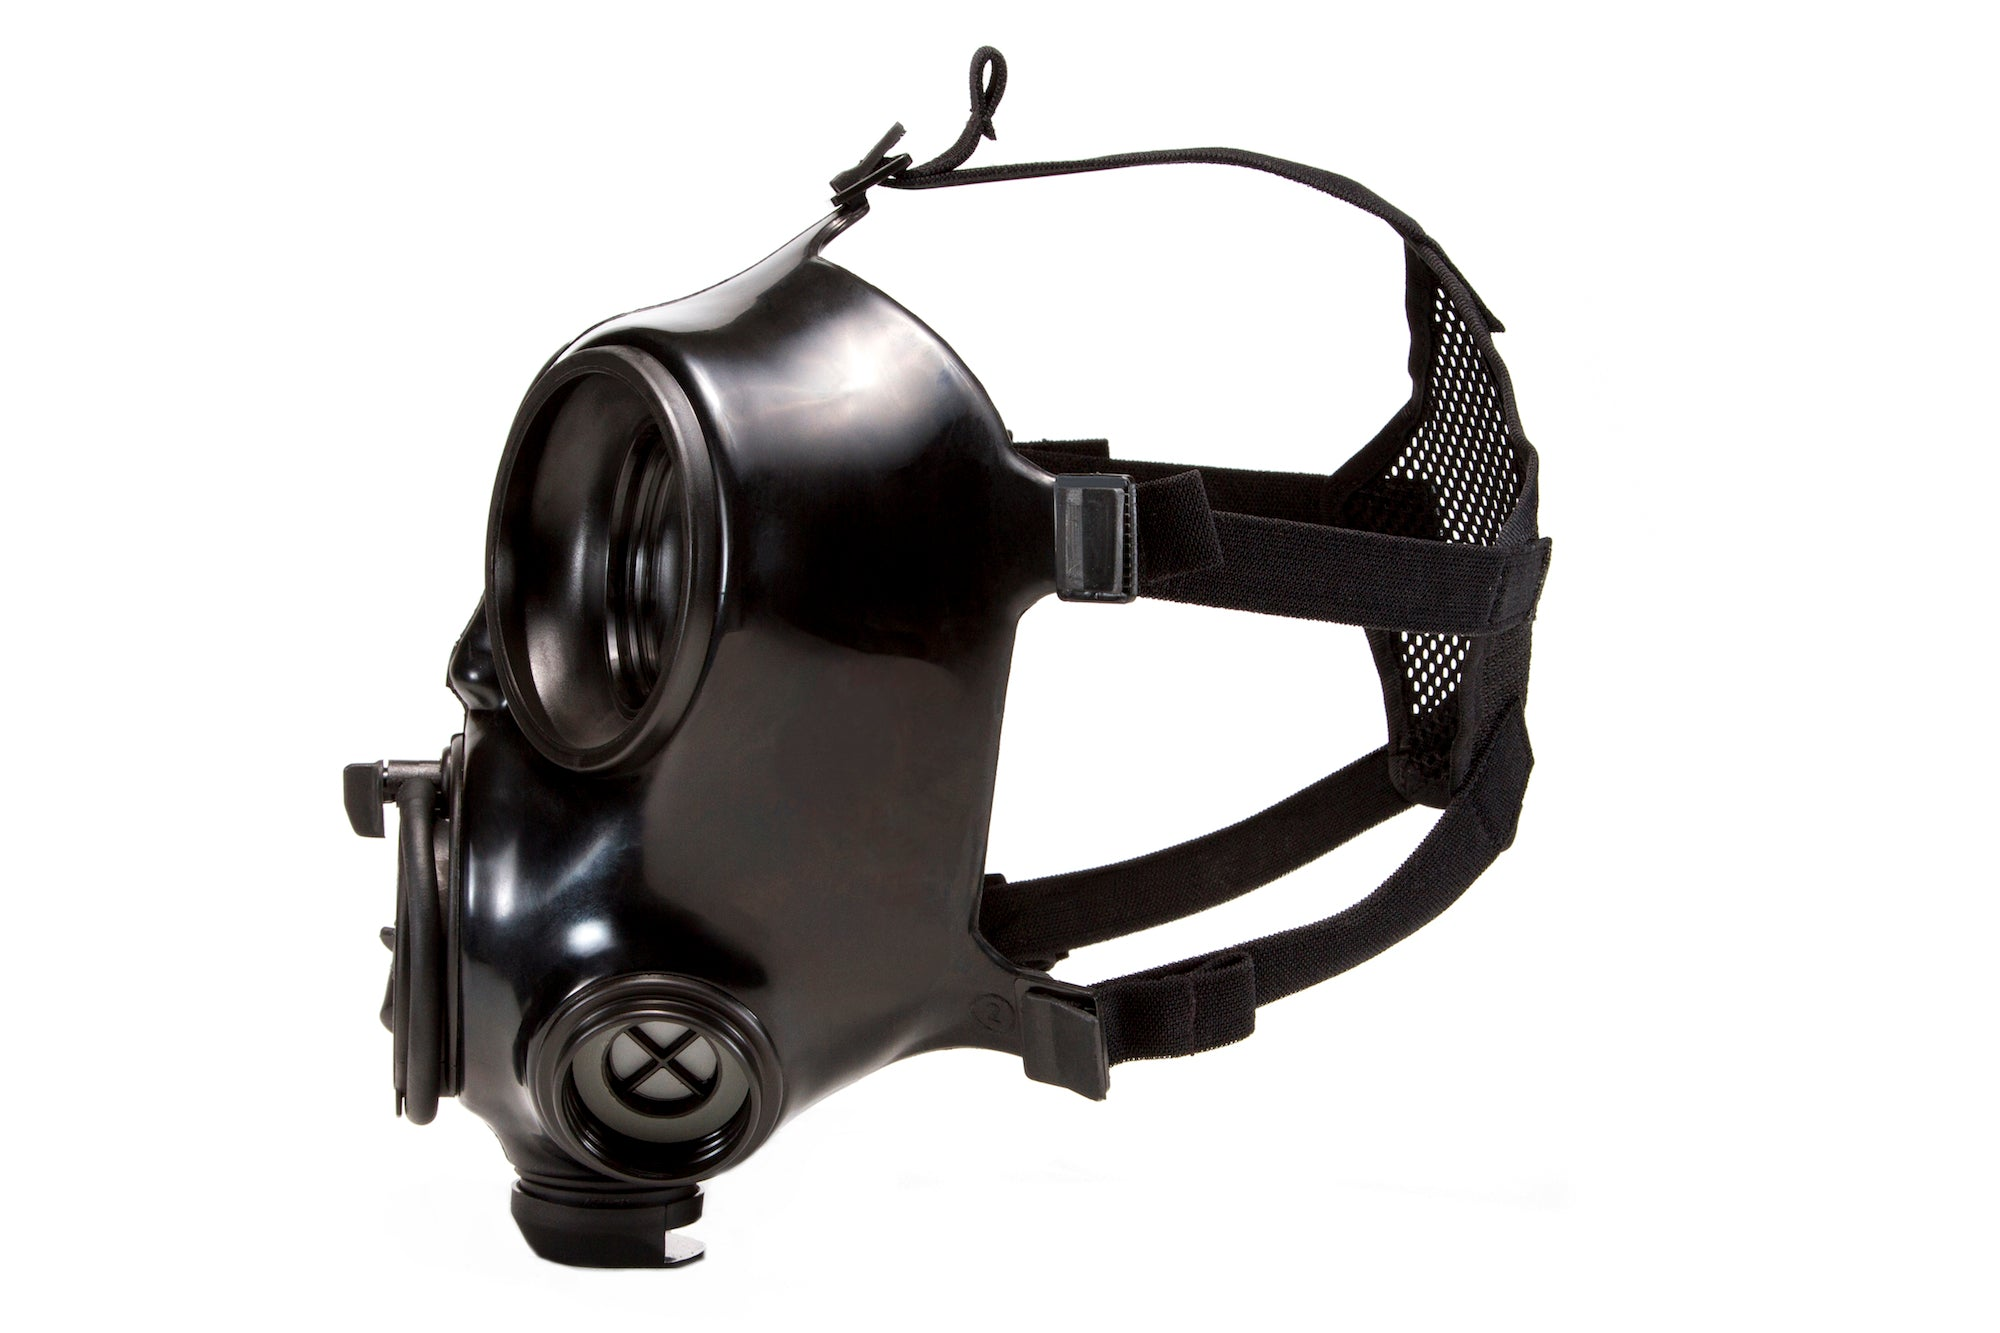 Side view of the CM-7M Military Gas Mask